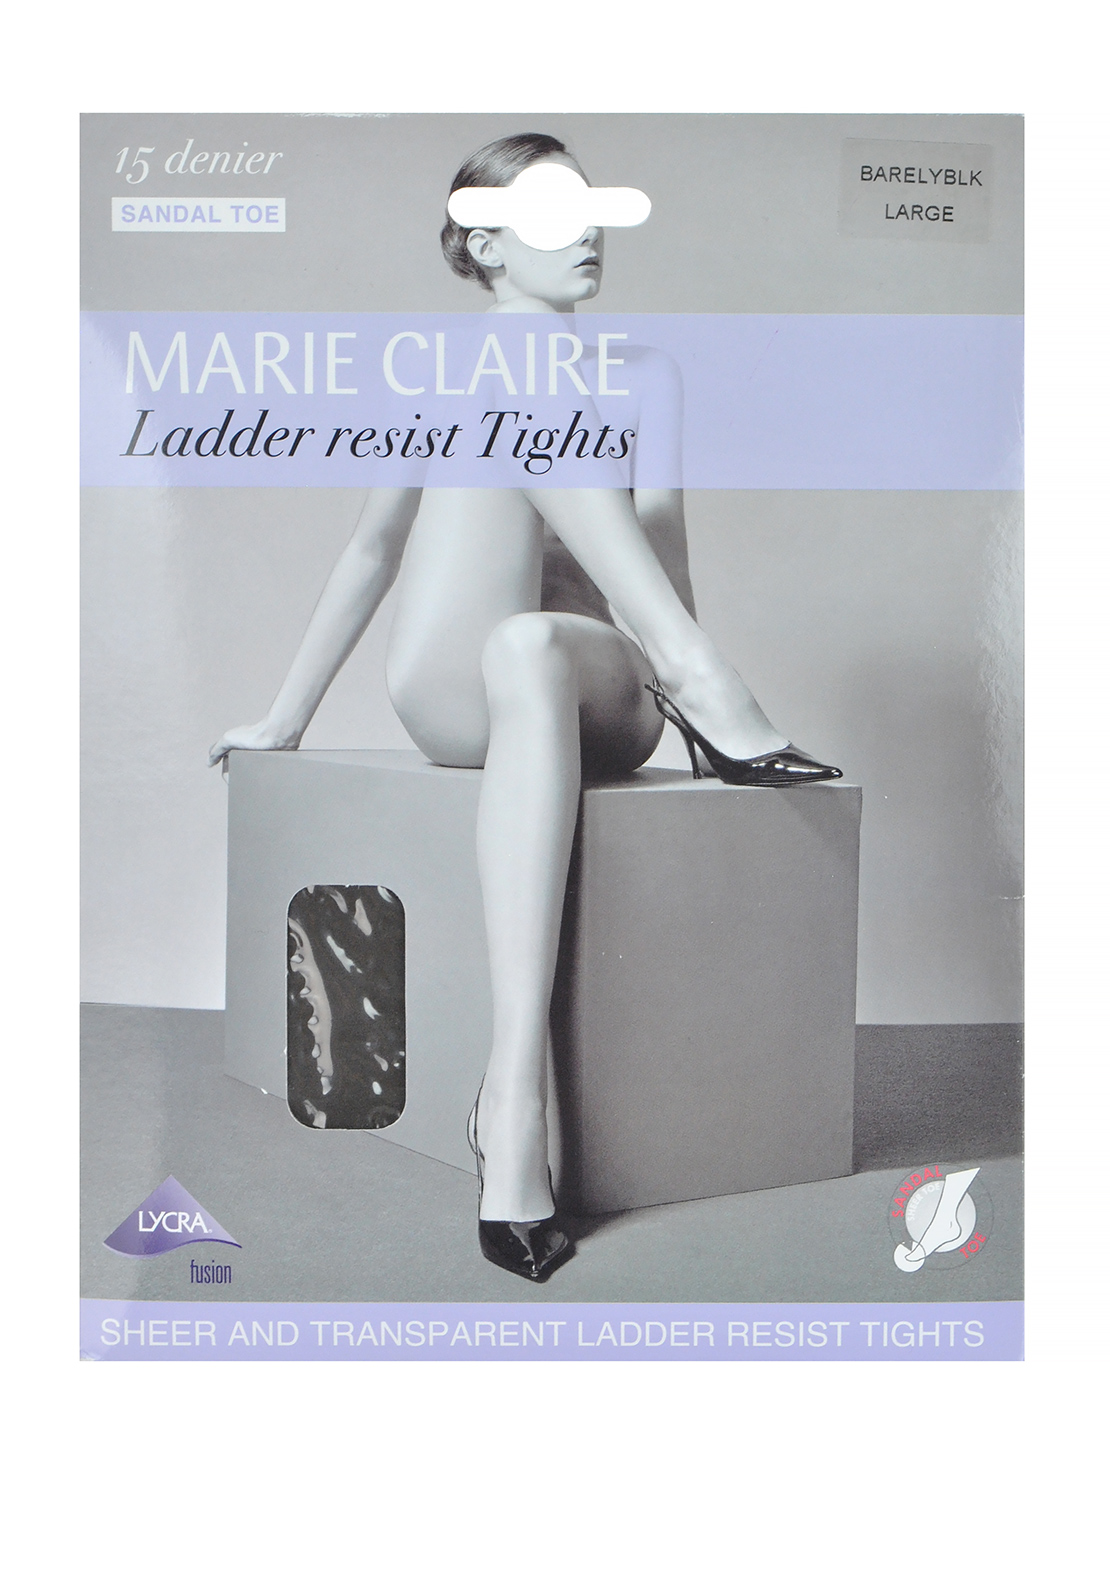 Marie Claire 15 Denier Ladder Resist Tights, Barely Black